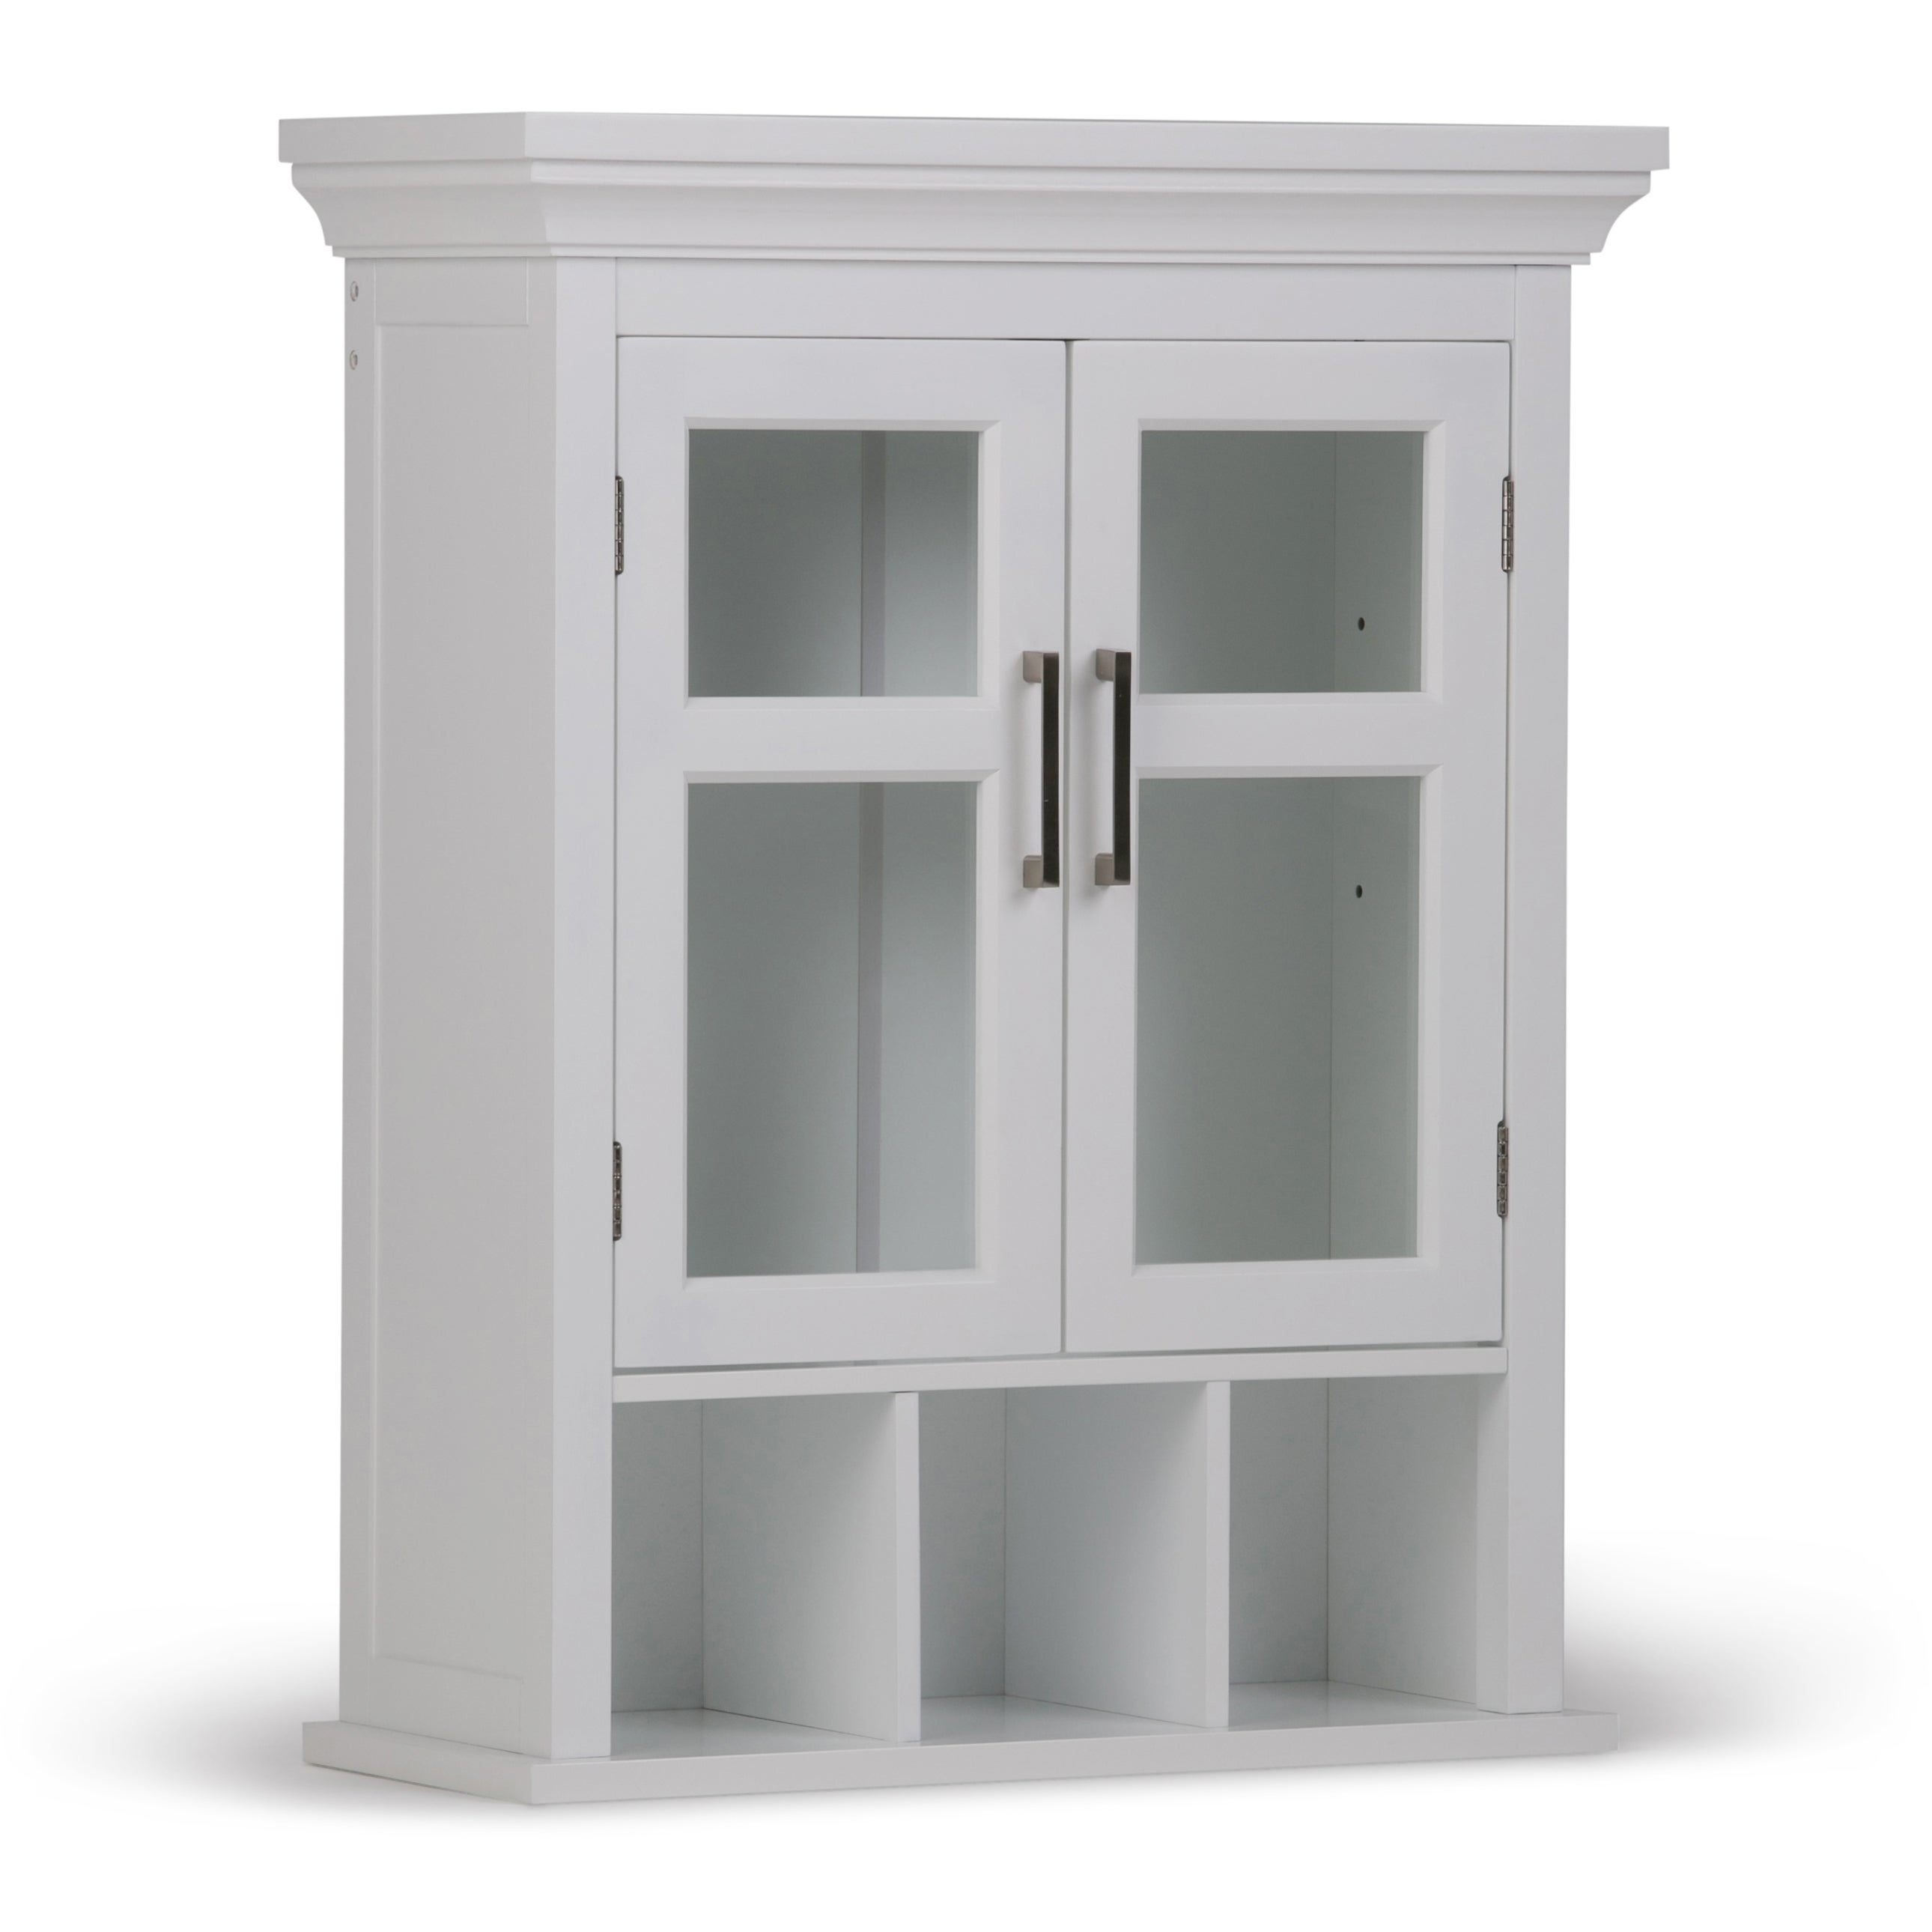 WYNDENHALL Hayes Two Door Bathroom Wall Cabinet With Cubbies In White    Free Shipping Today   Overstock.com   17761304